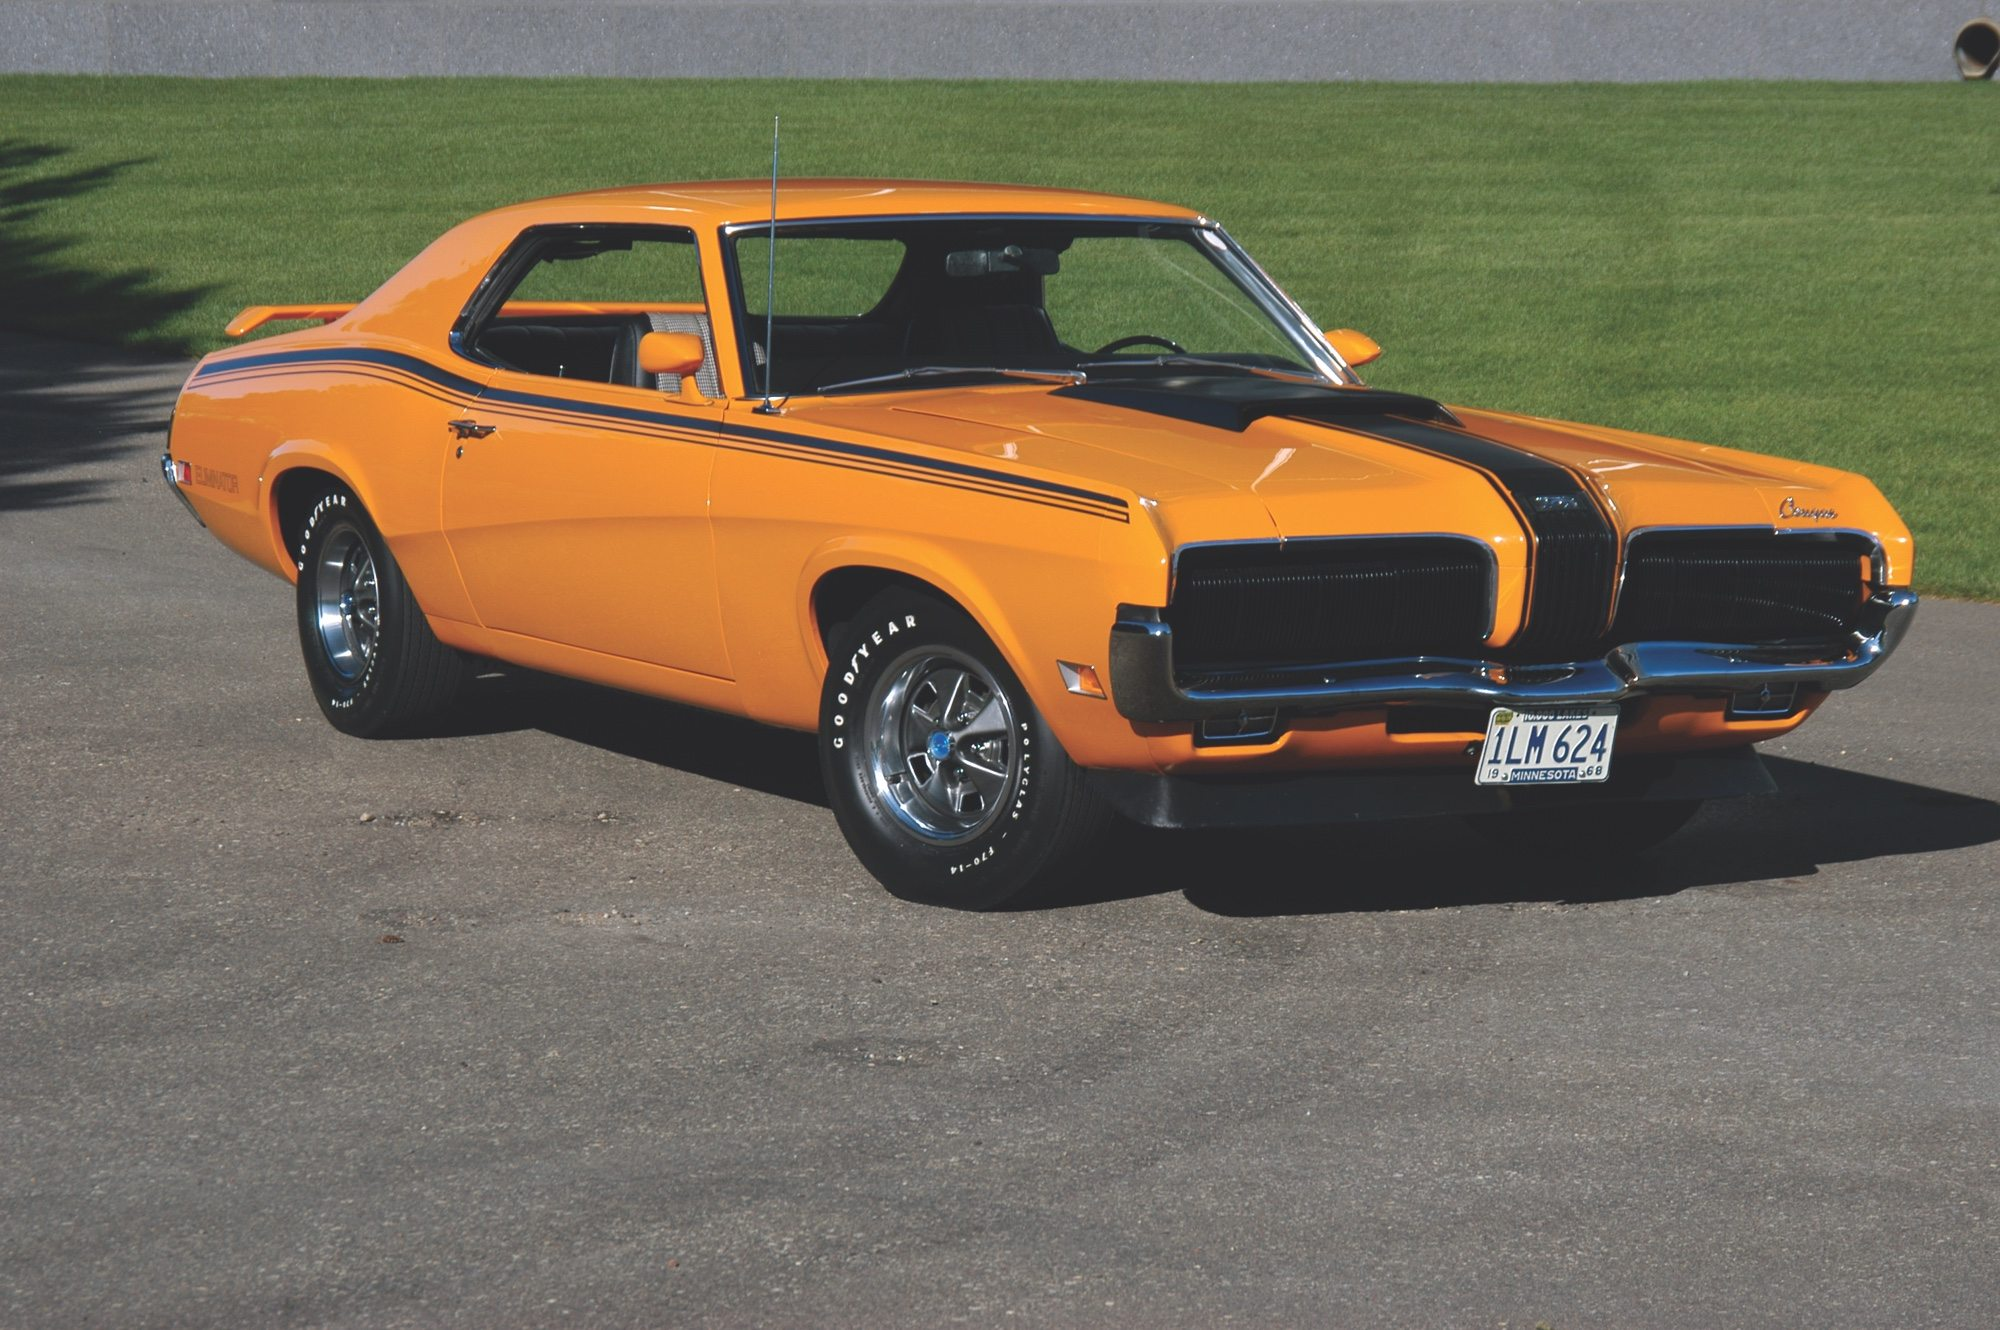 The 1970 Mercury Cougar Eliminator Was a Classy Mach One Mustang     1970 Mercury Cougar Eliminator Muscle Car